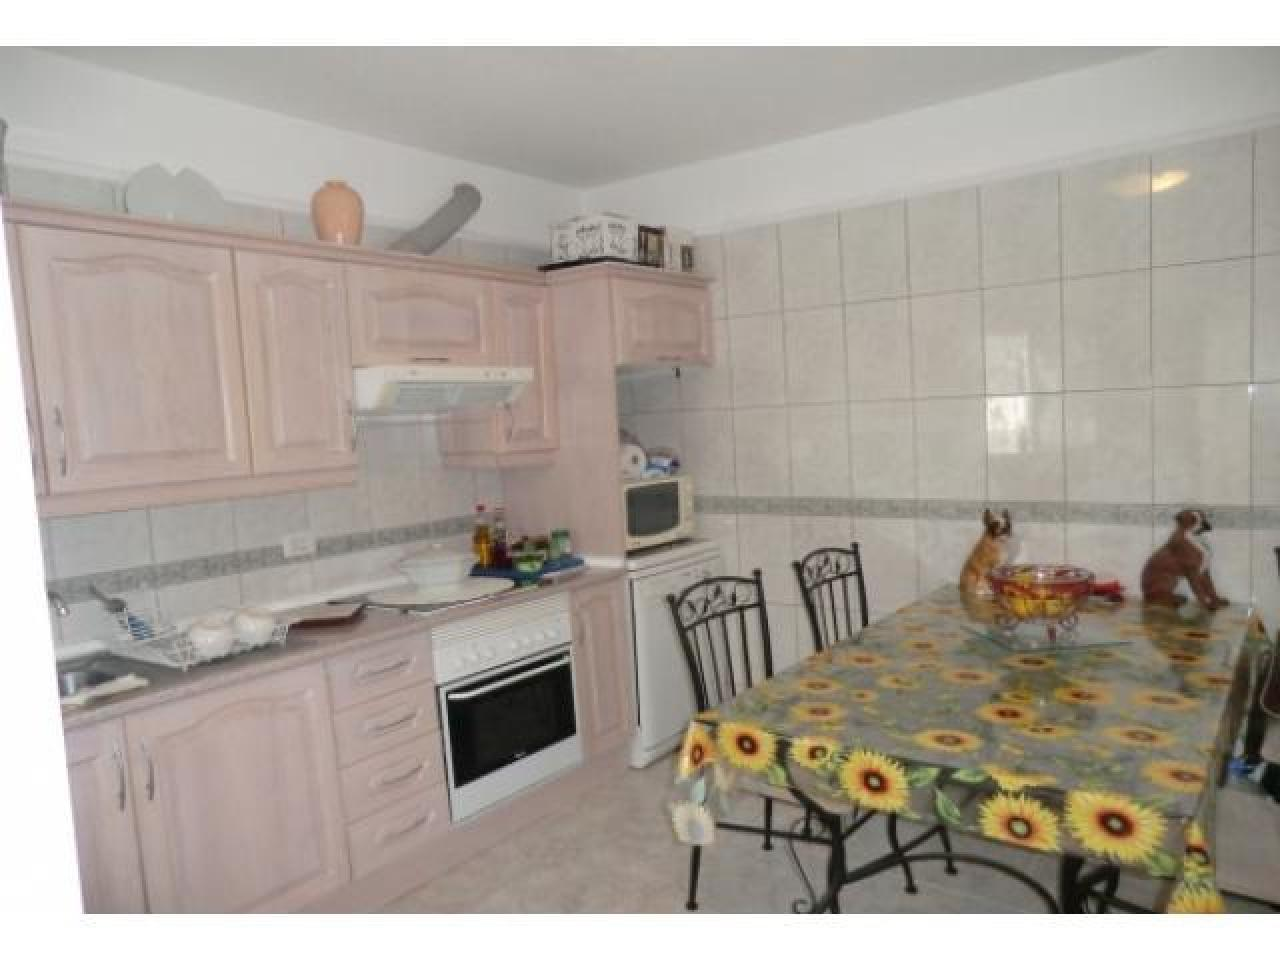 Real estate in Tenerife for sale » #217 - 1